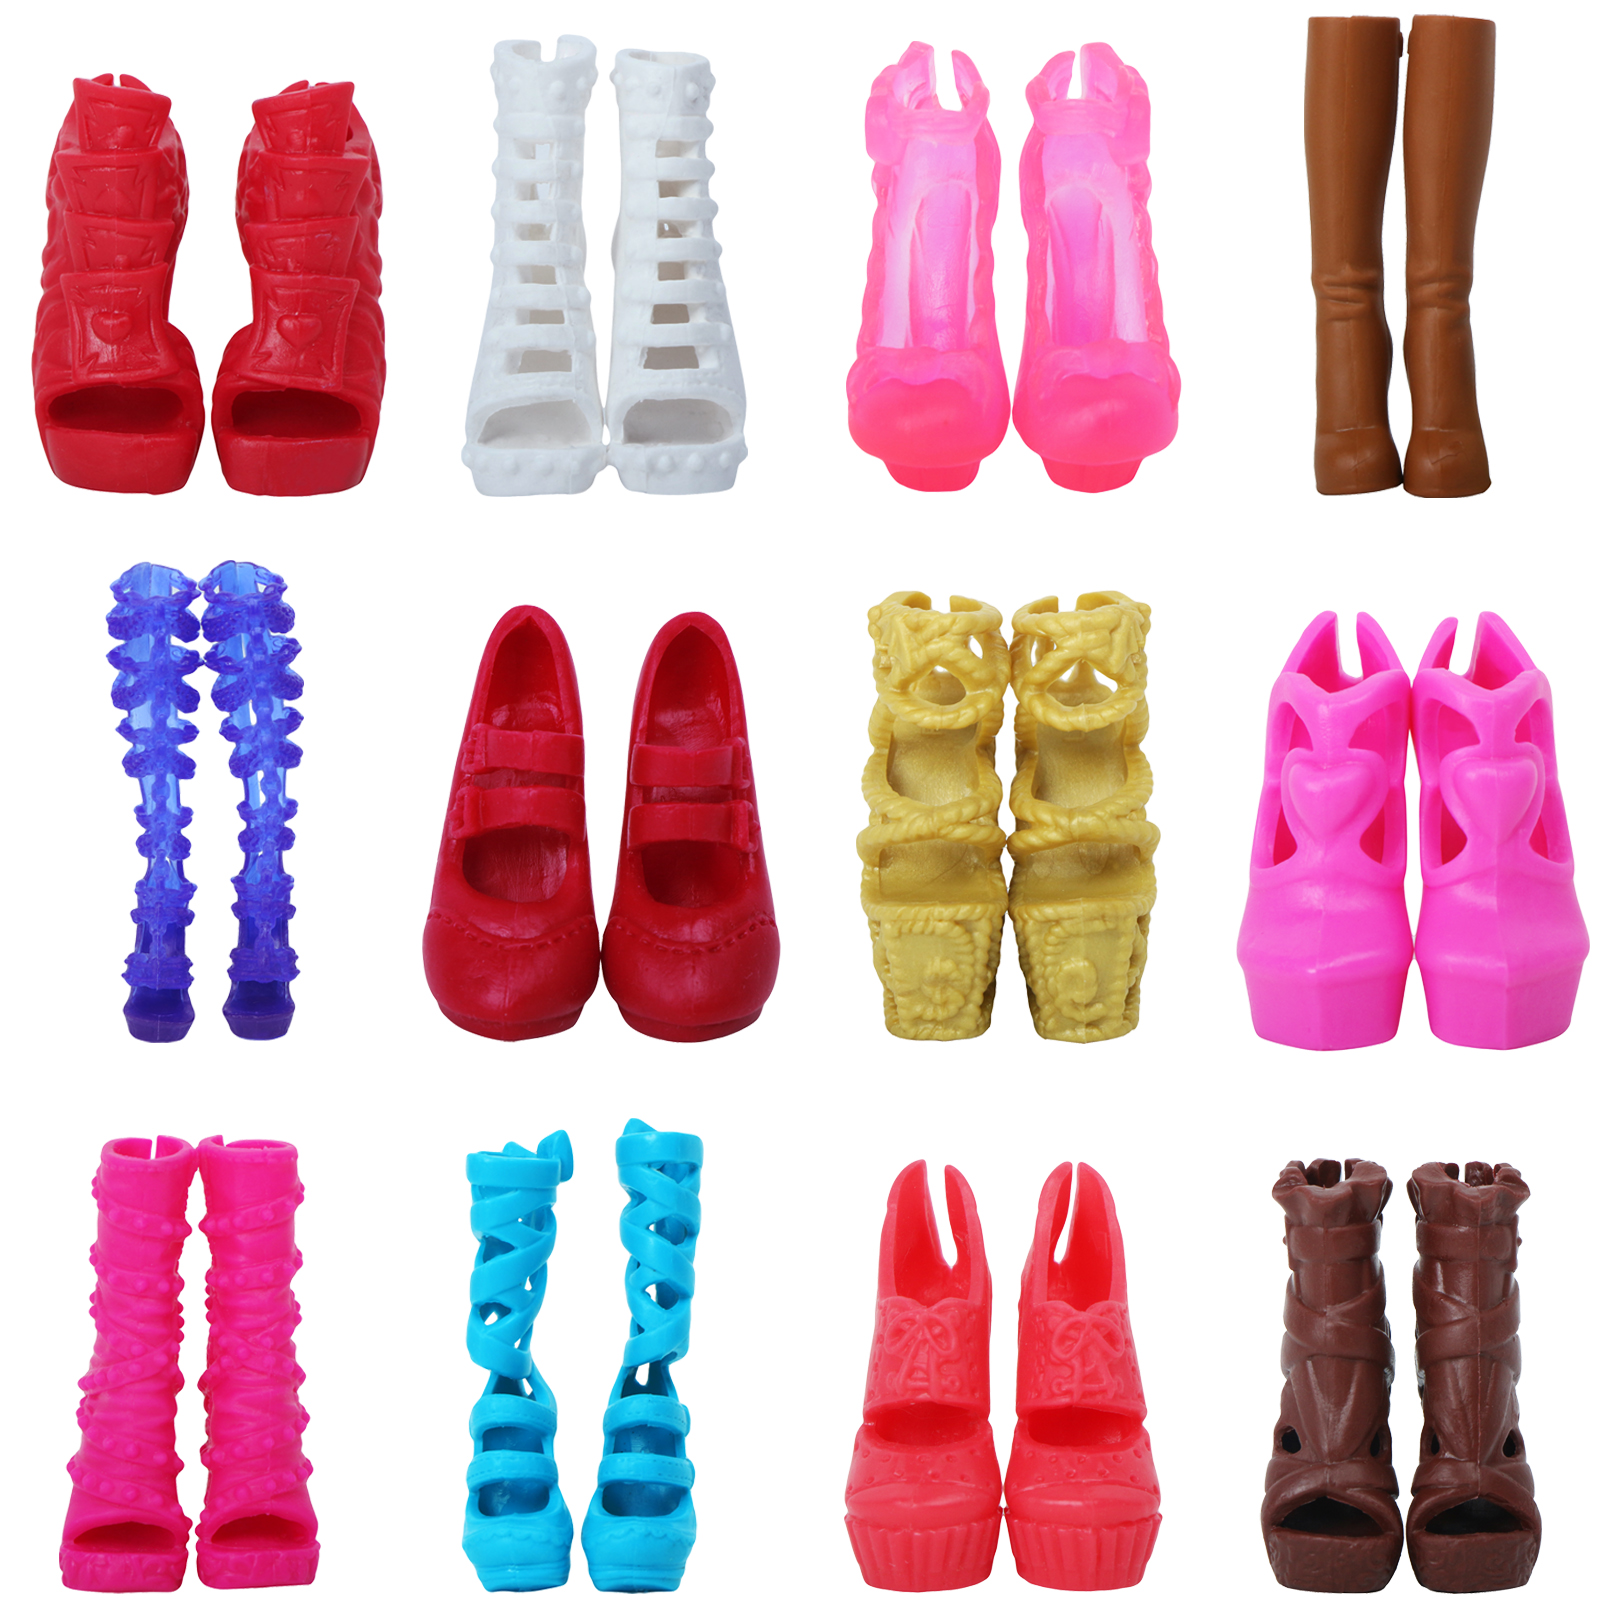 High Quality Doll Shoes For Monster High Doll Wedding Party Wear Mixed Style High Heels Shoes Boot Sandals Toys Accessories